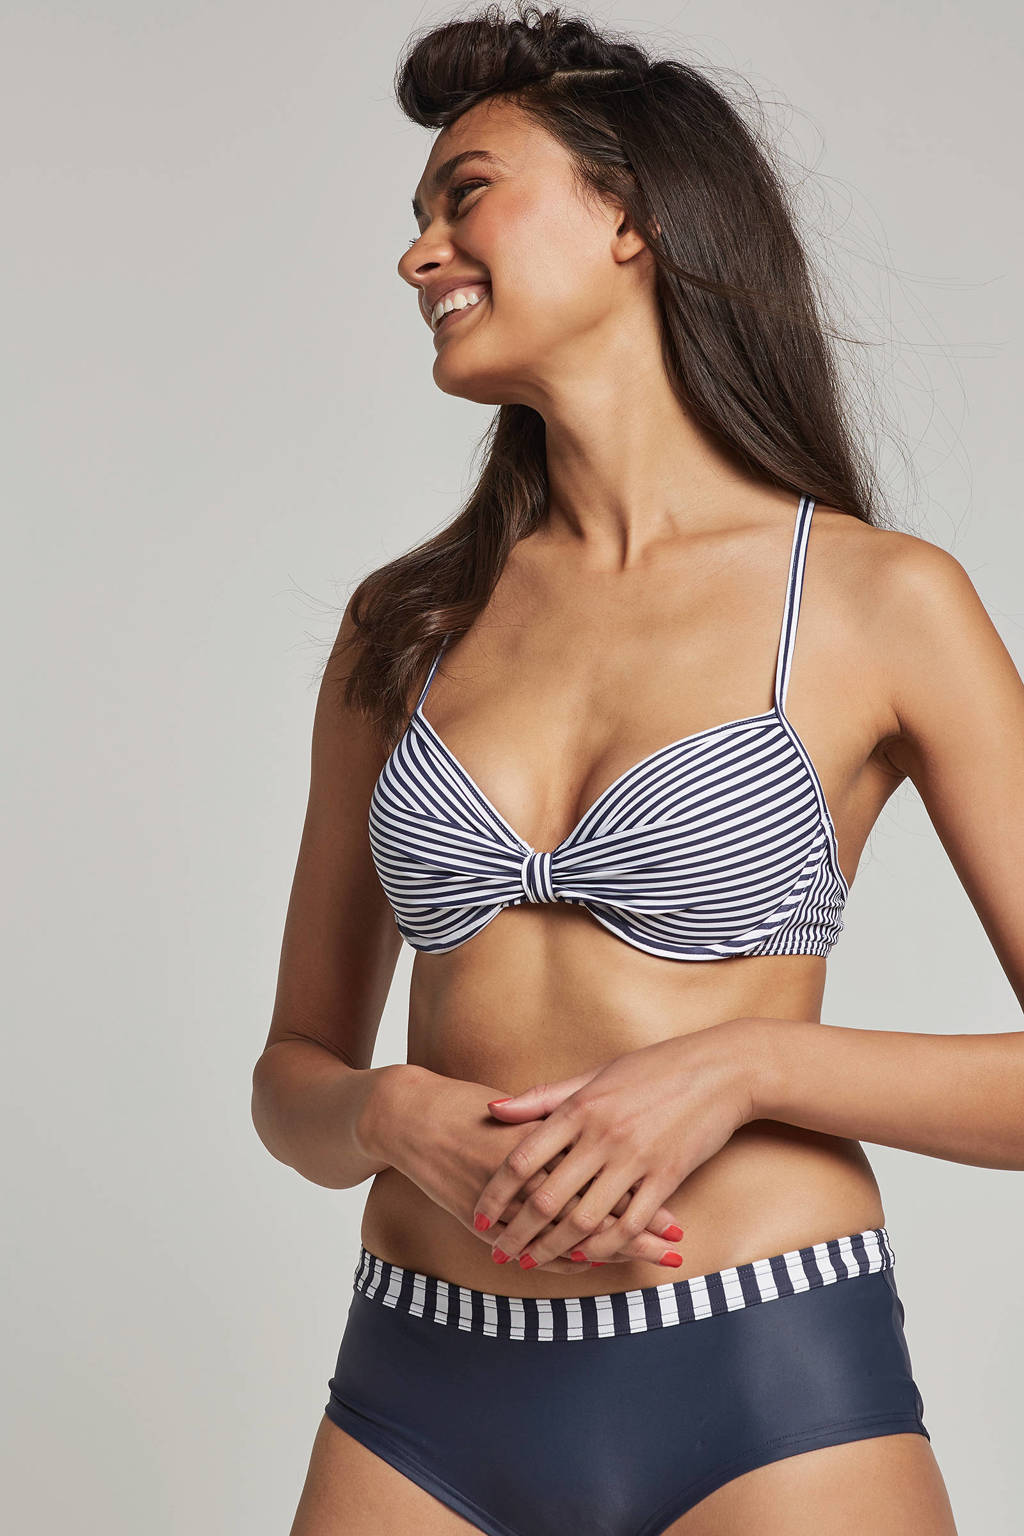 ESPRIT Women Beach gestreepte push up bikinitop met beugel marine, Marine/wit